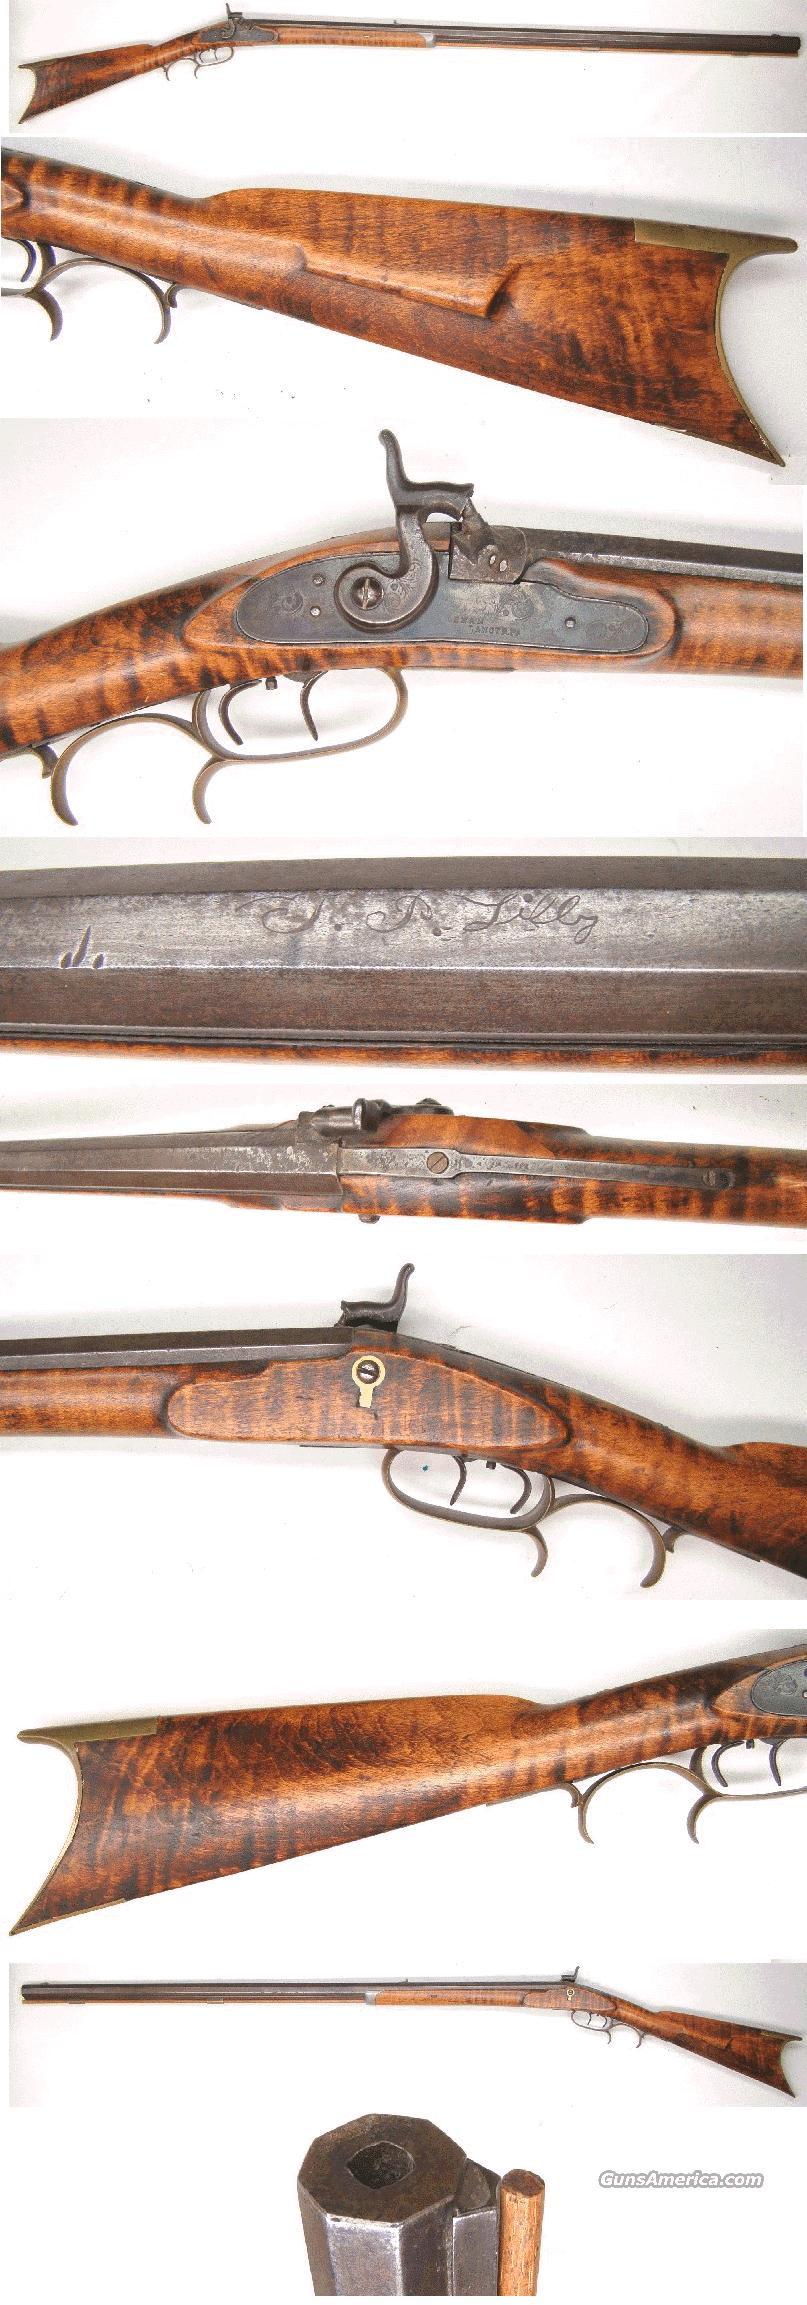 T.P.Lilly  Percussion Rifle  Guns > Rifles > Antique (Pre-1899) Rifles - Perc. Misc.